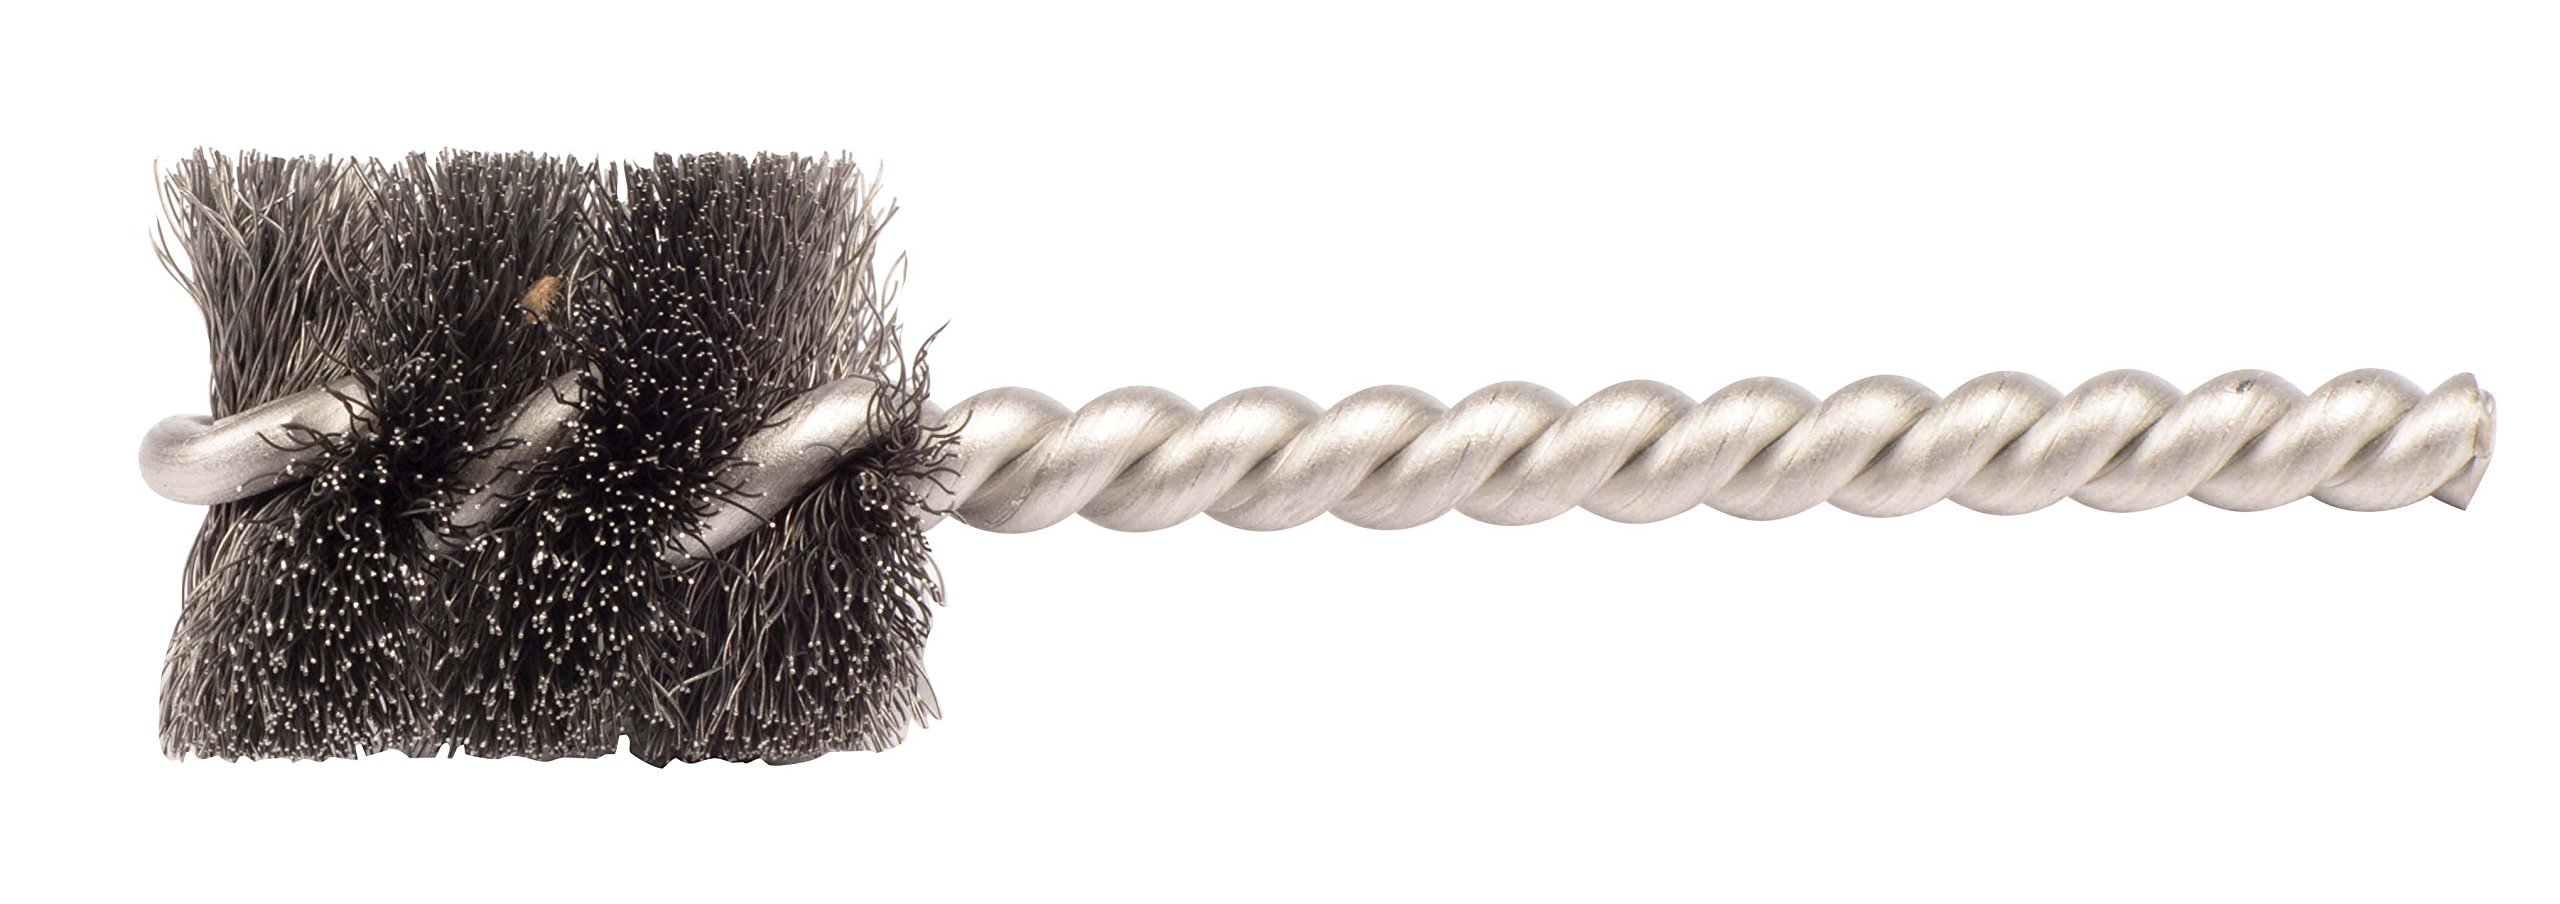 Weiler 21076 Power Tube Brush, Round Style, 3/4'', 0.06'' Steel Wire Fill, 1'' Length (Pack of 10)